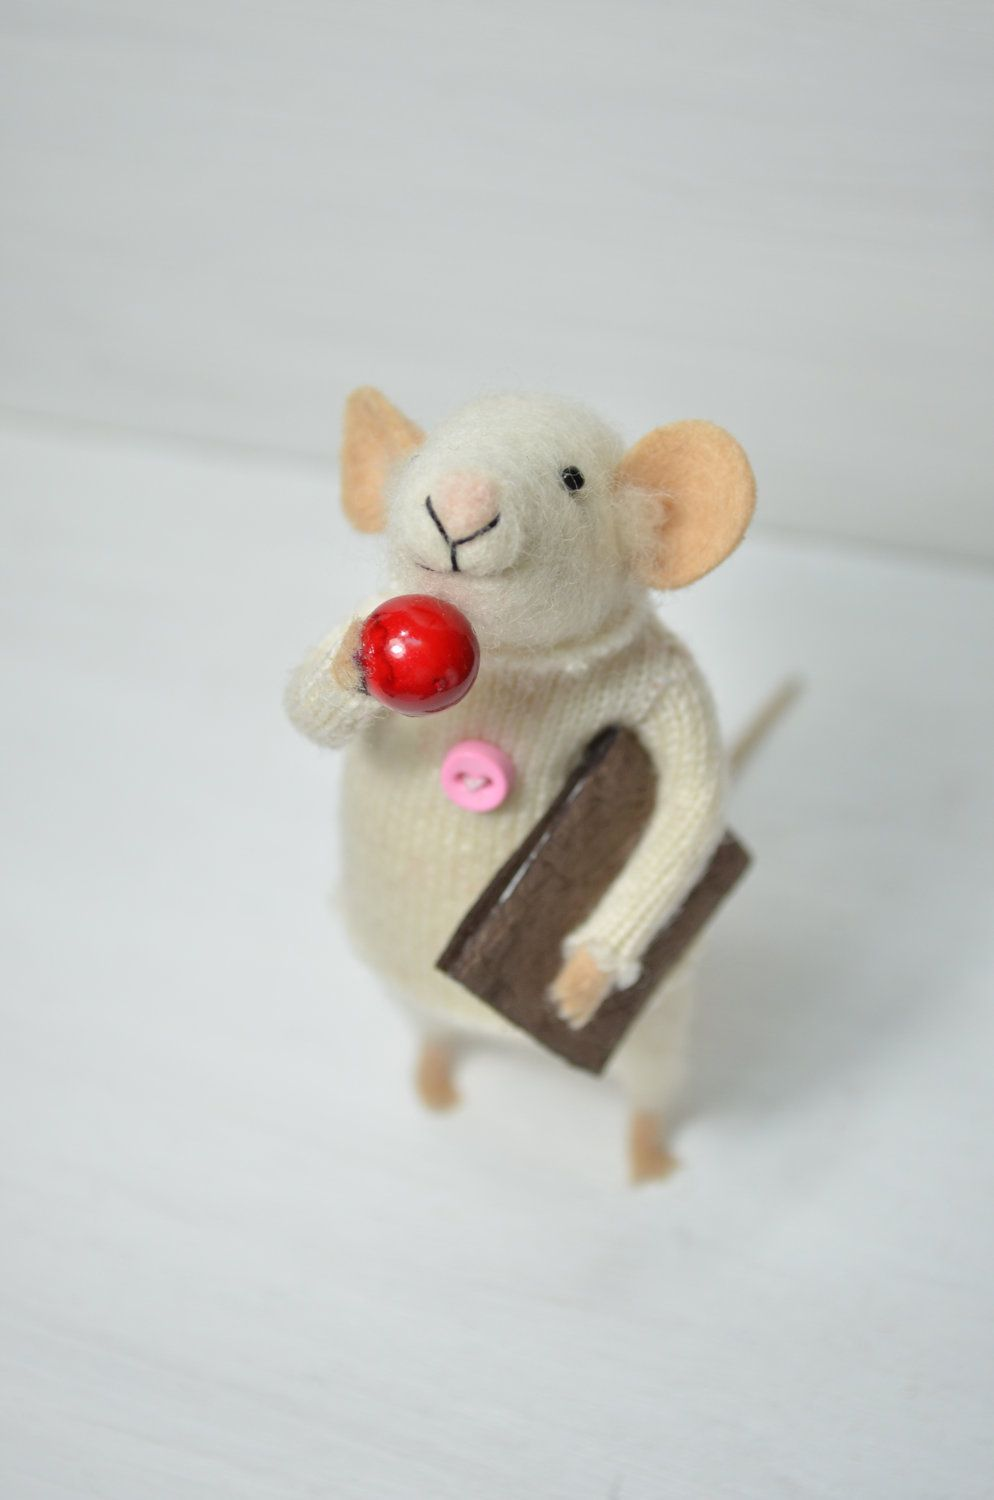 Little Reader Mouse - unique - needle felted ornament animal, felting dreams made to order. $68.00, via Etsy. Okay, not a bear, but still.